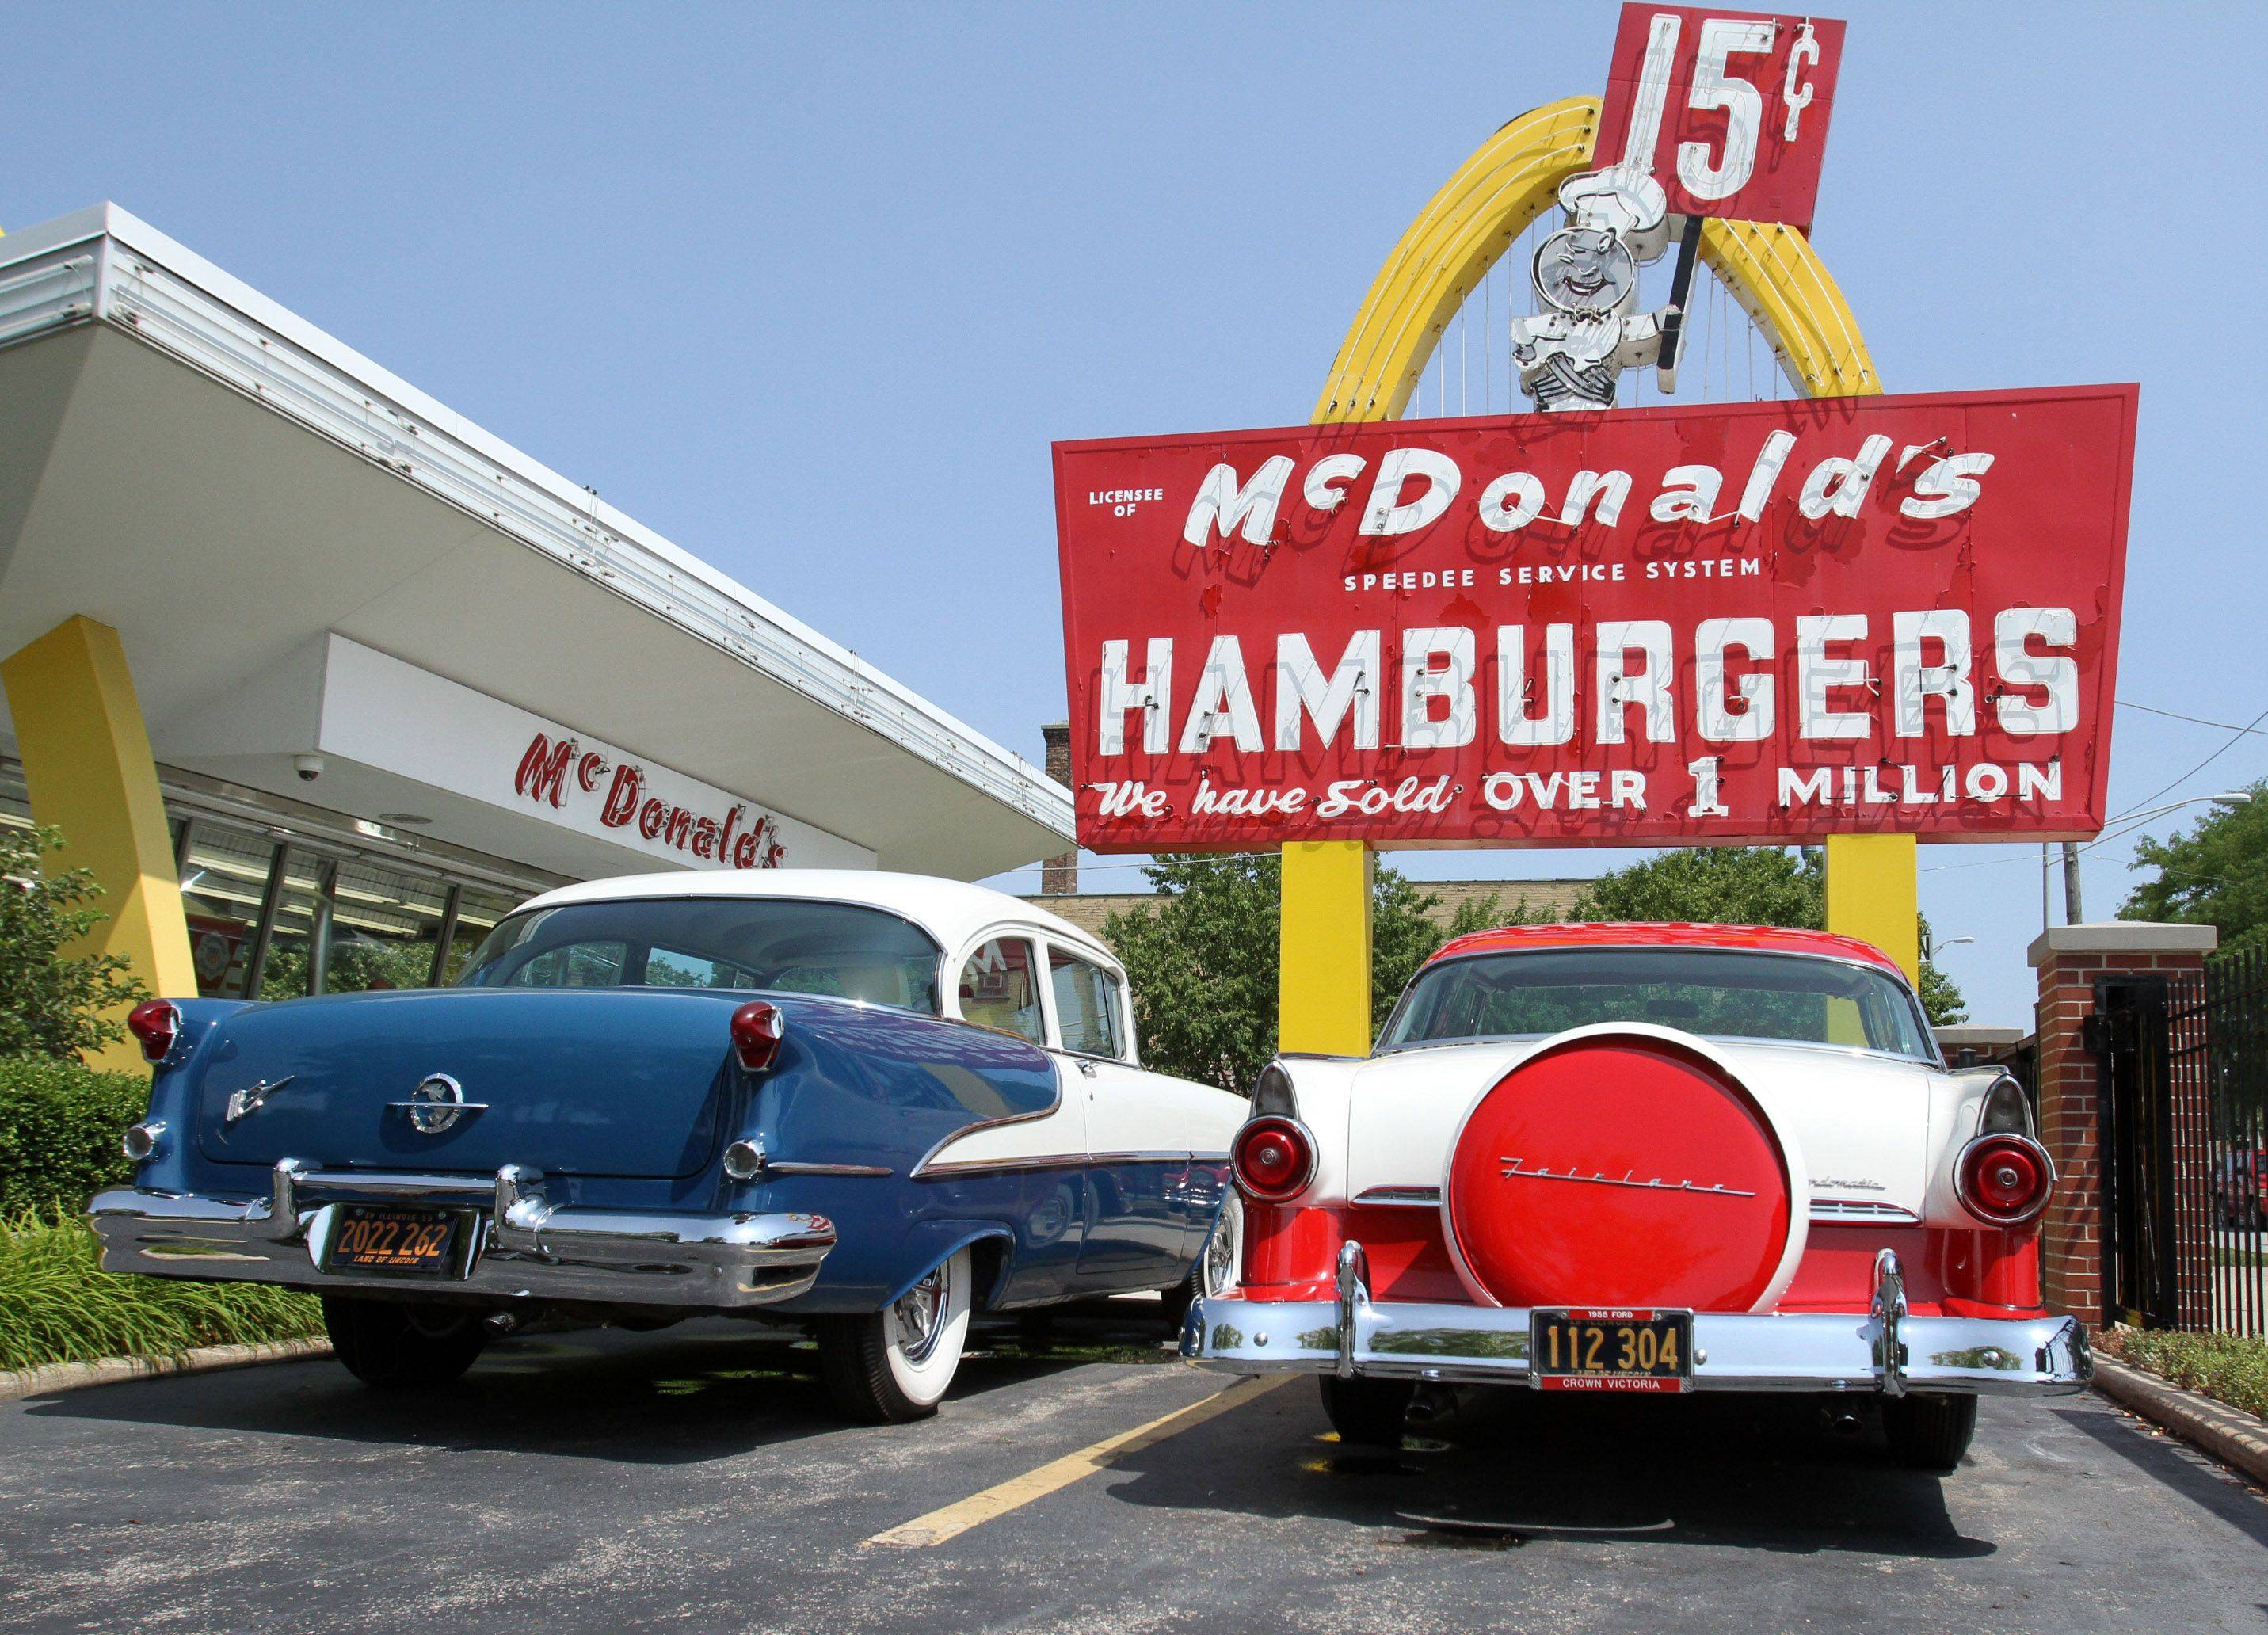 Des Plaines city officials say they hope to persuade McDonald�s officials to keep the museum in town, despite rumors that portions of it could be moved, or the entire site shut down.